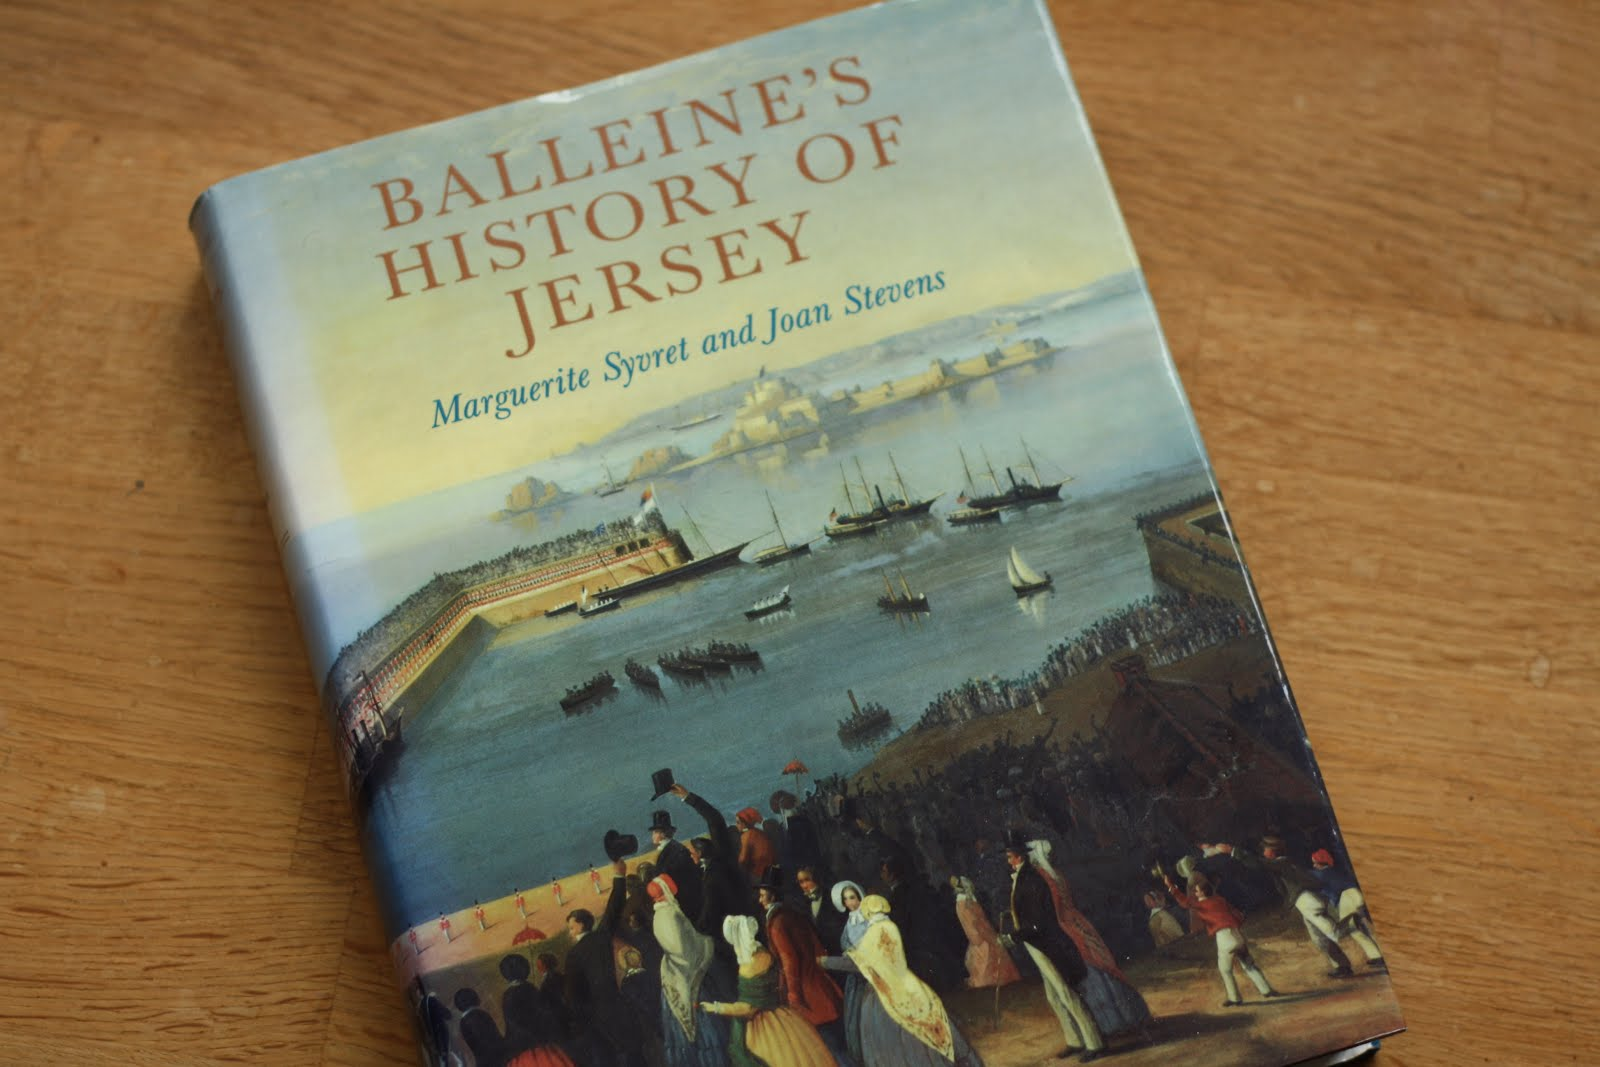 # 32 Read Balleine's History of Jersey